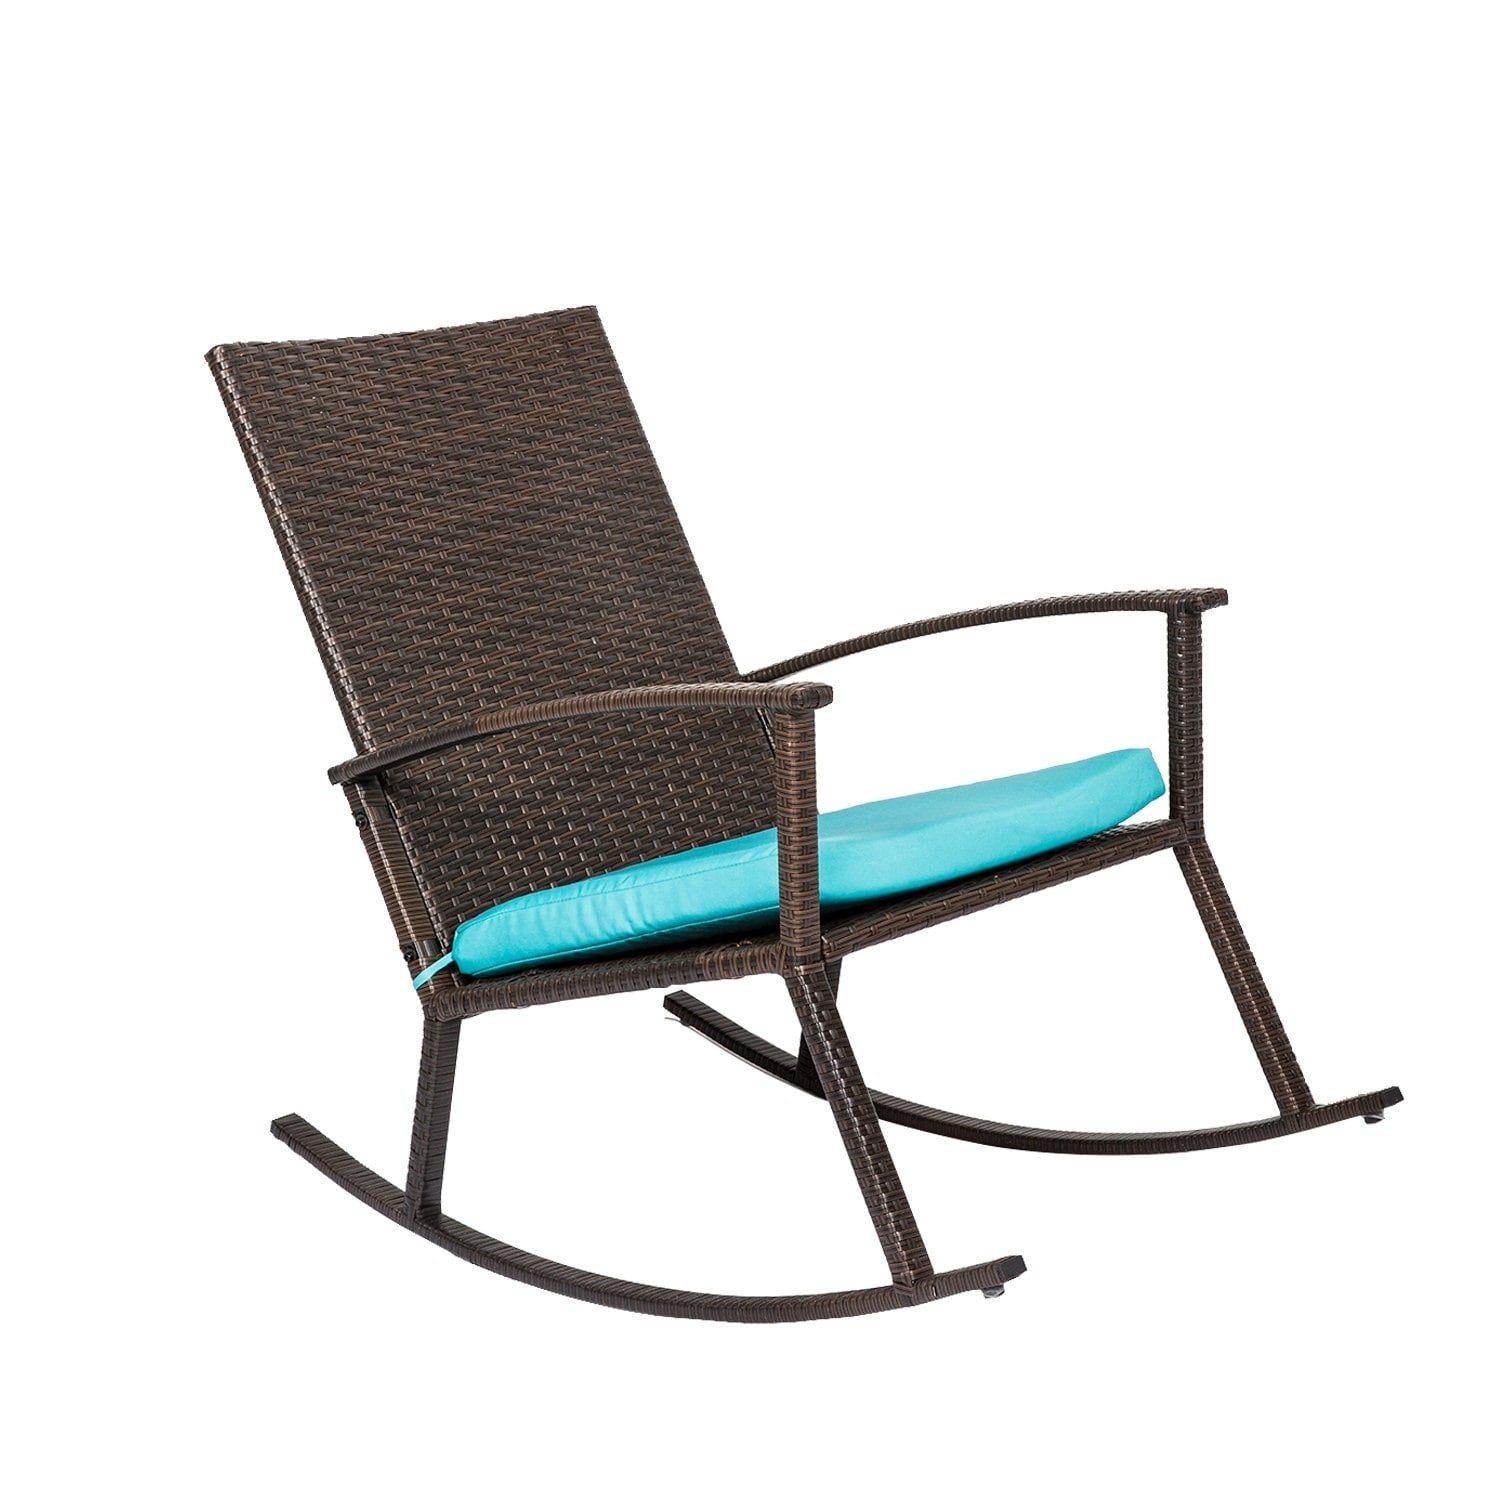 Shop Kinbor Handmade PE Wicker Rocking Chair Rattan Rocker Armchair All Weather  Outdoor Seat W/ Cushion Patio Furniture   Free Shipping Today ...